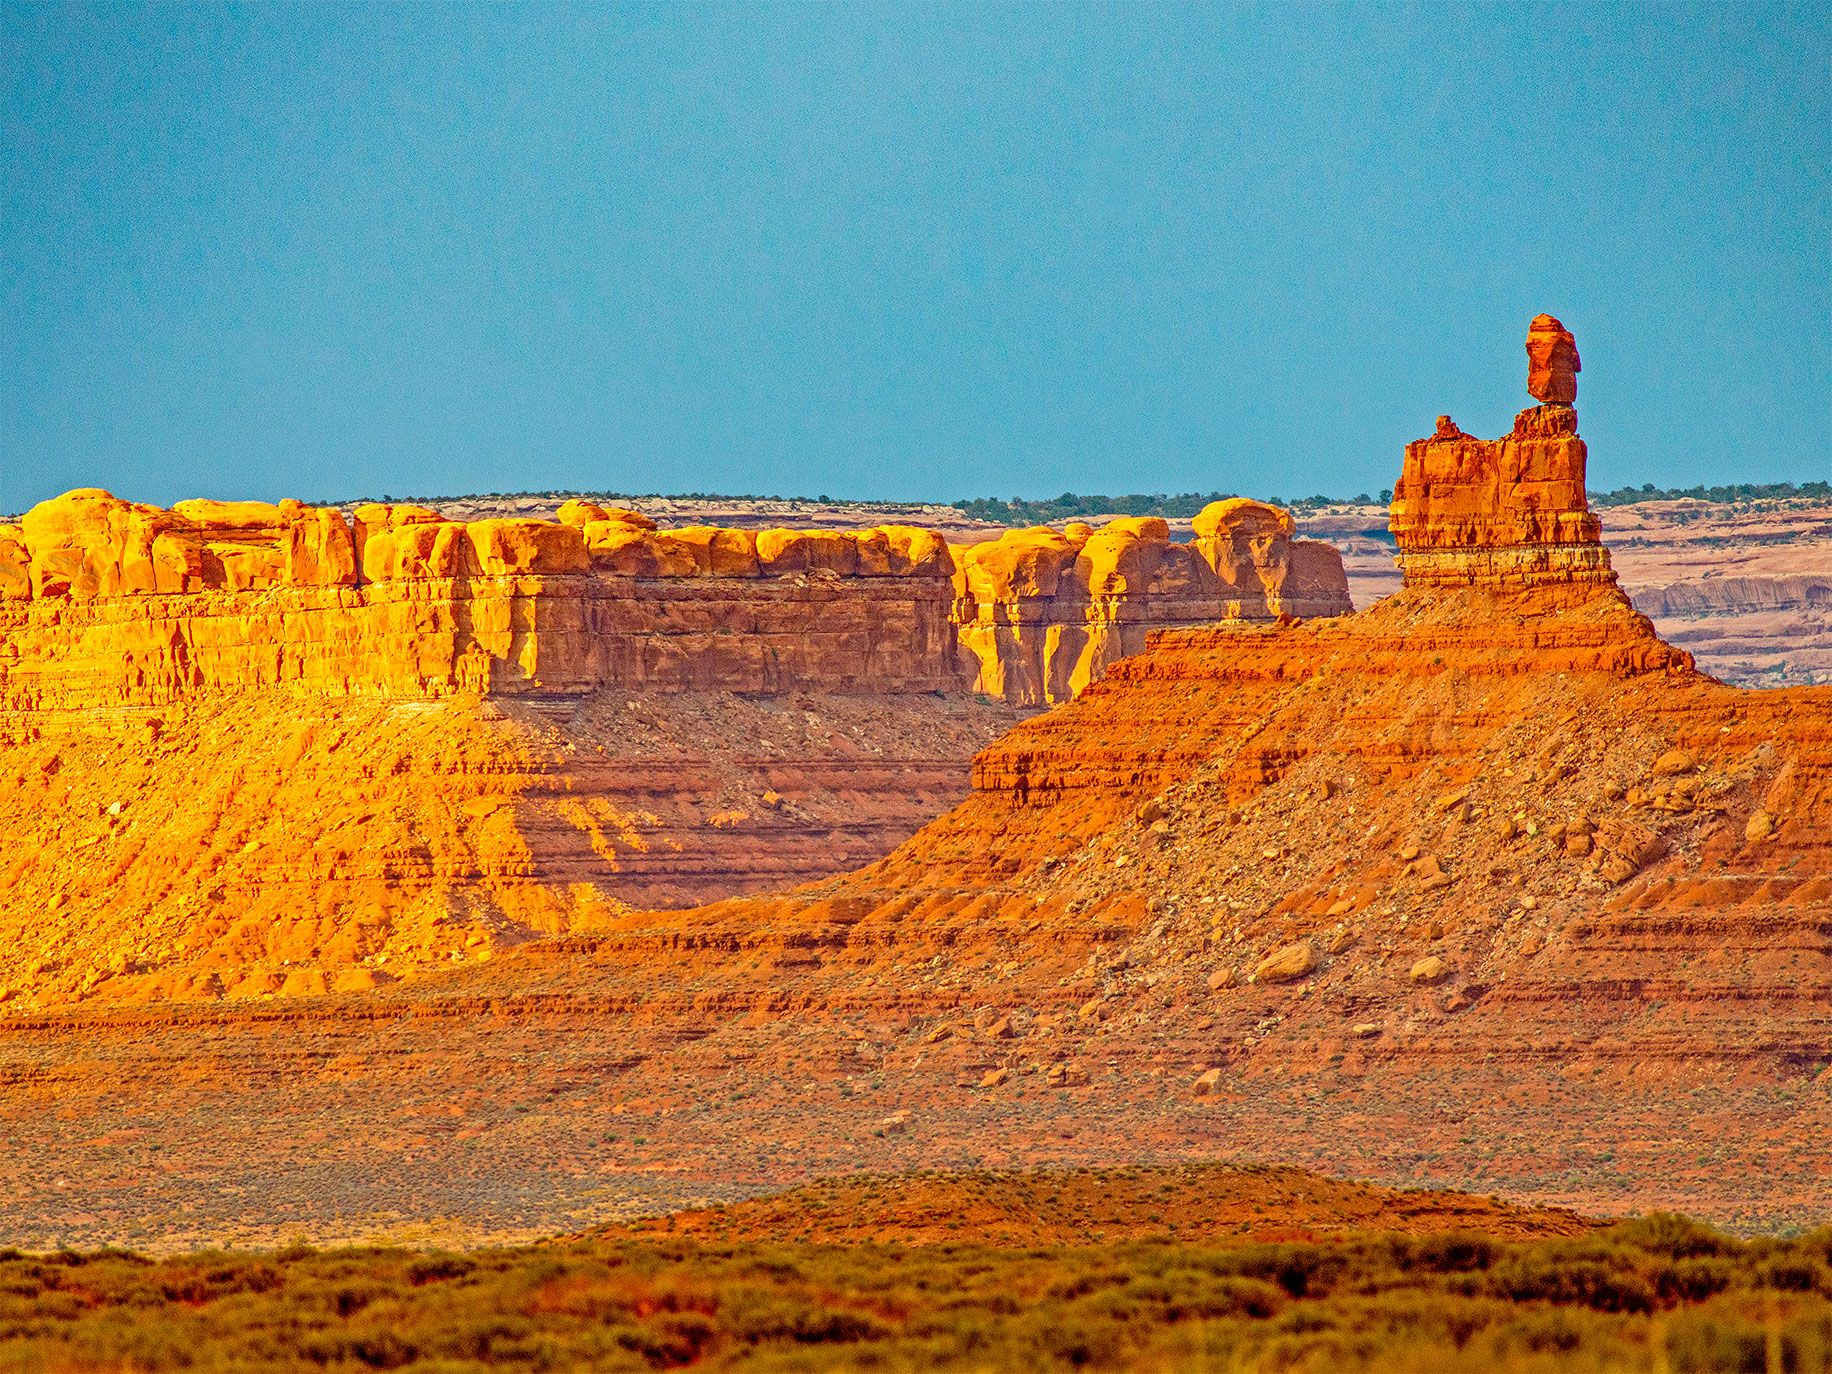 A sandstone tower in the Valley of the Gods, with Cedar Mesa in the background. President Trump's executive order removed both areas from the Bears Ears National Monument.